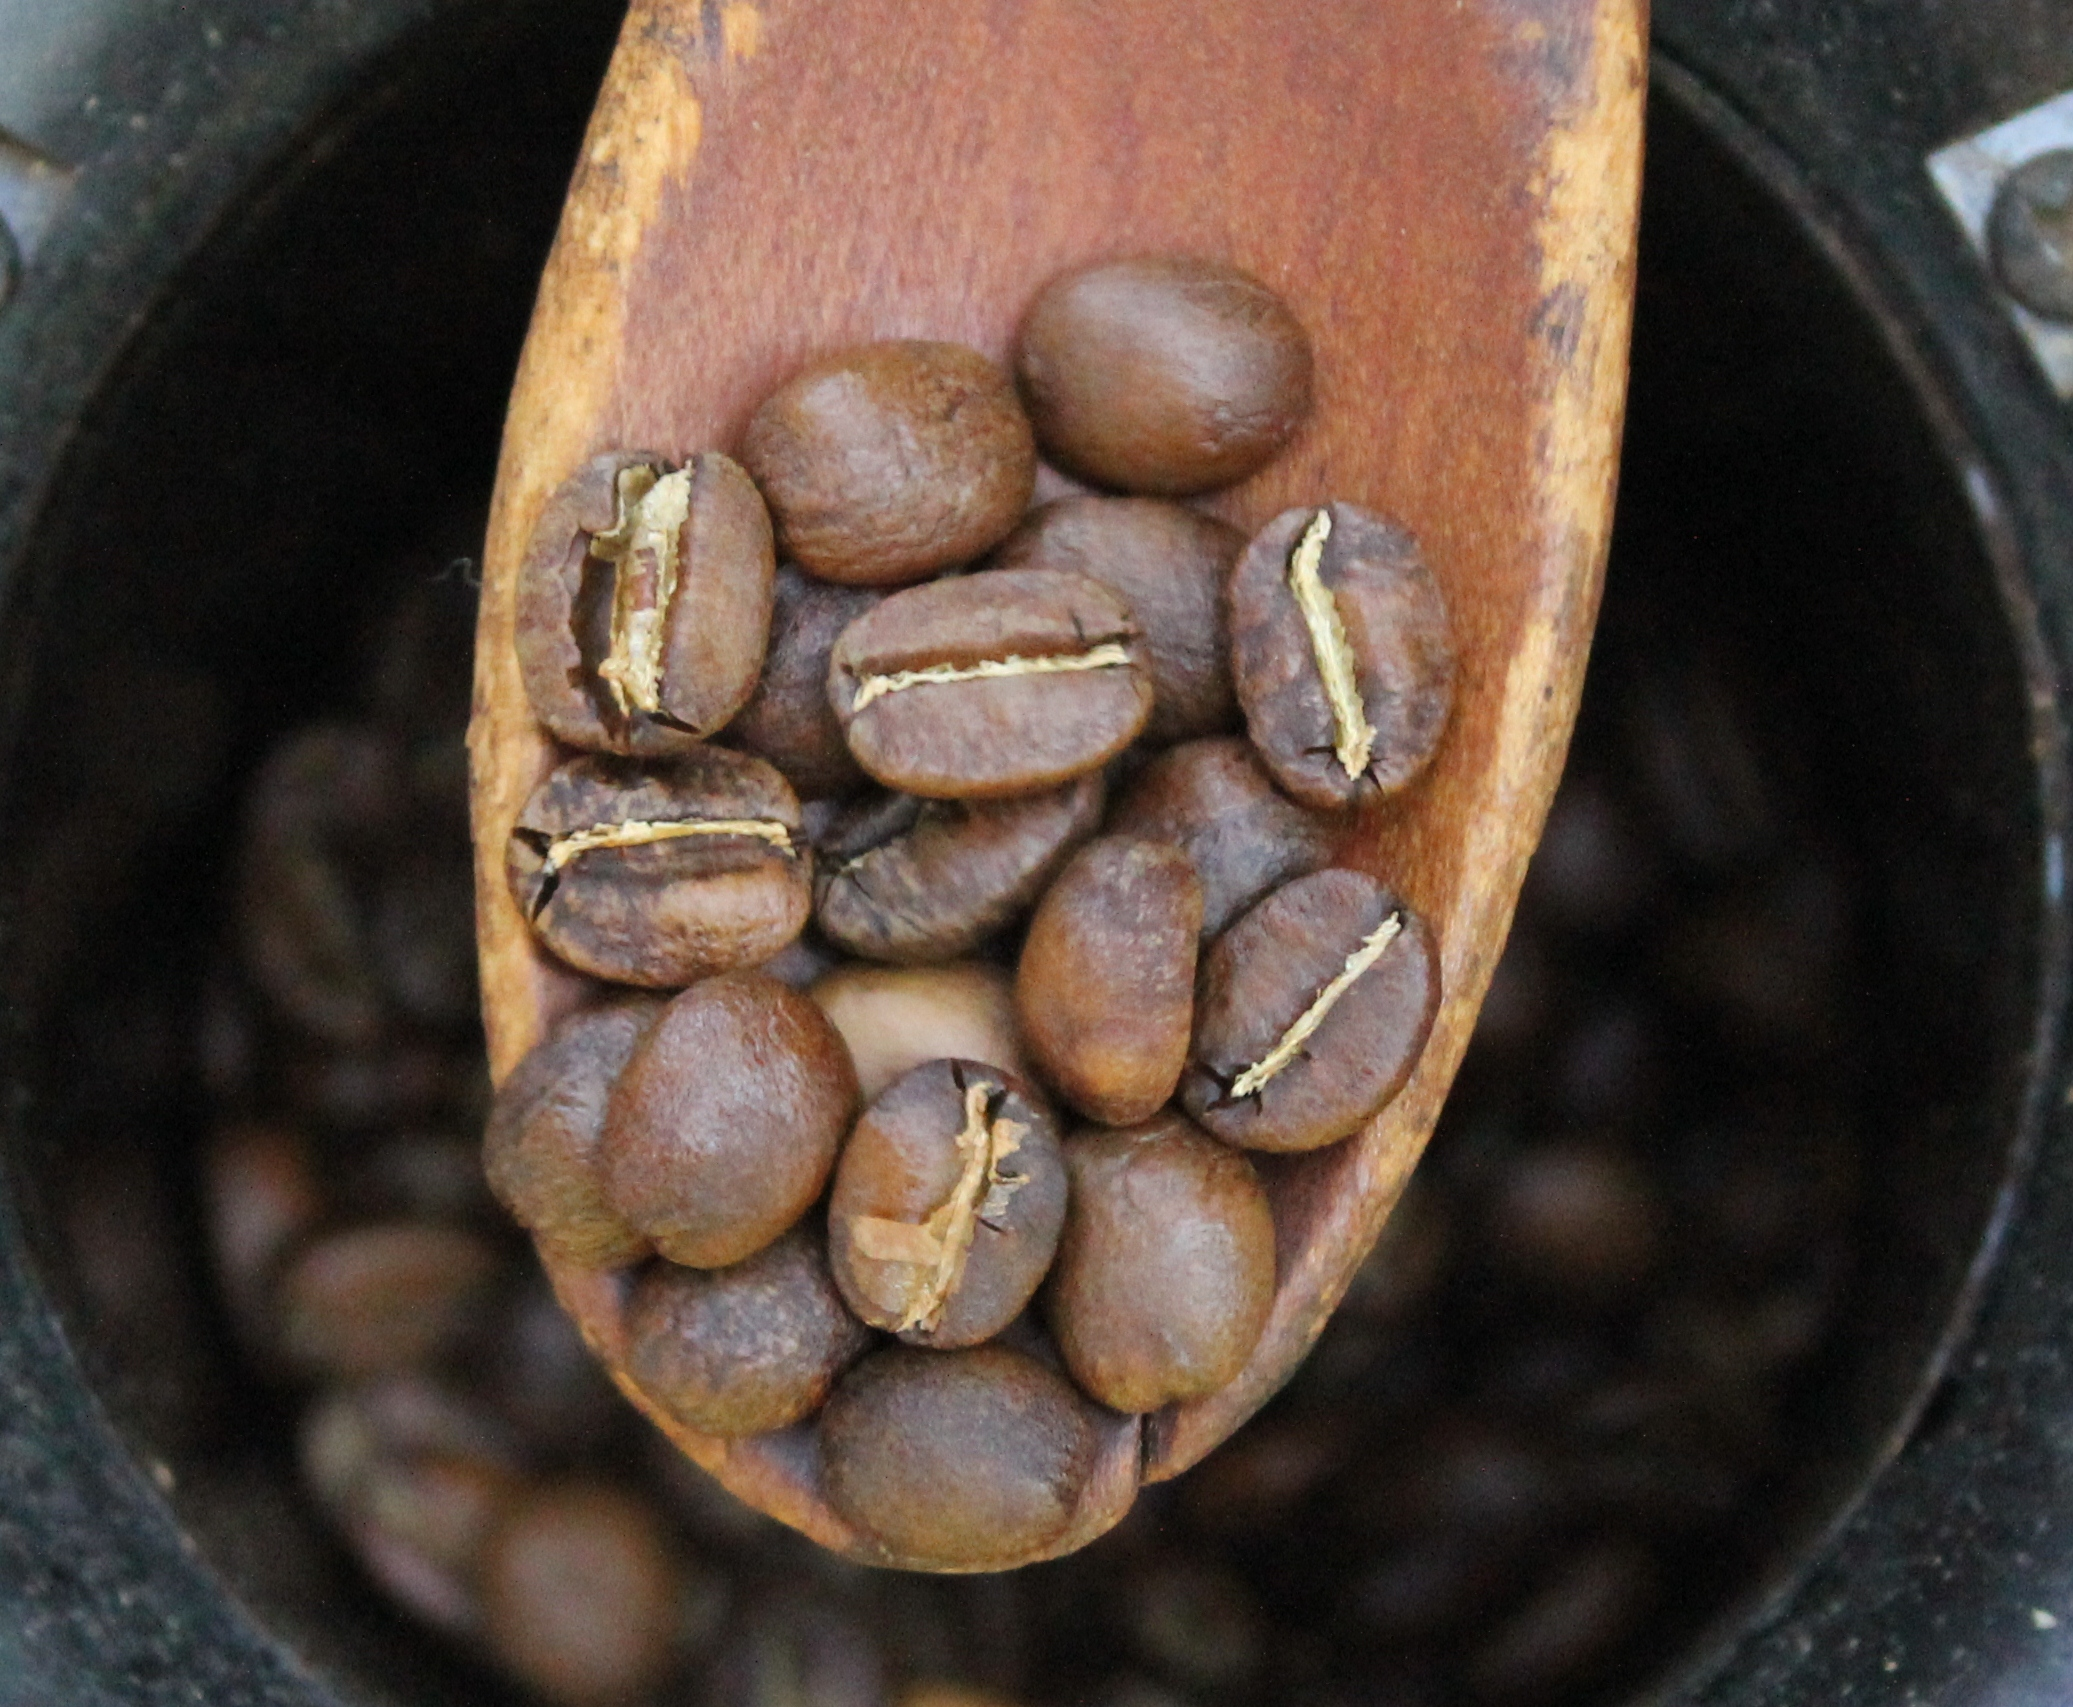 Filecoffee roast levels 2 the home roaster color chartg filecoffee roast levels 2 the home roaster color chartg nvjuhfo Images